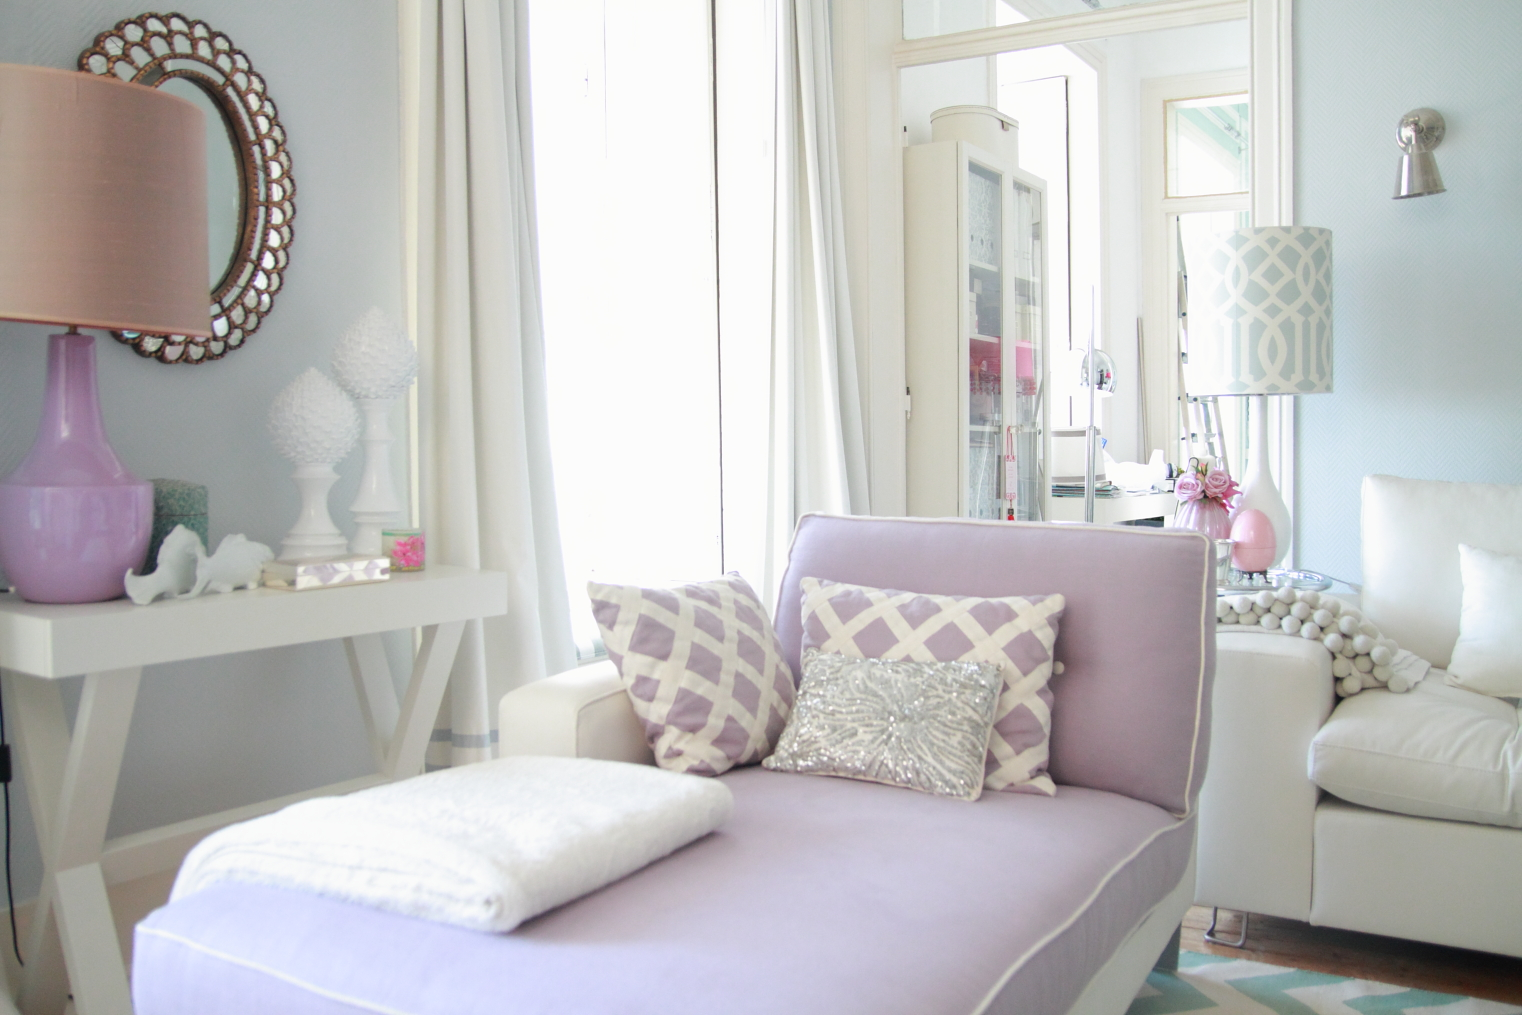 Home Styling Ana Antunes MyHome